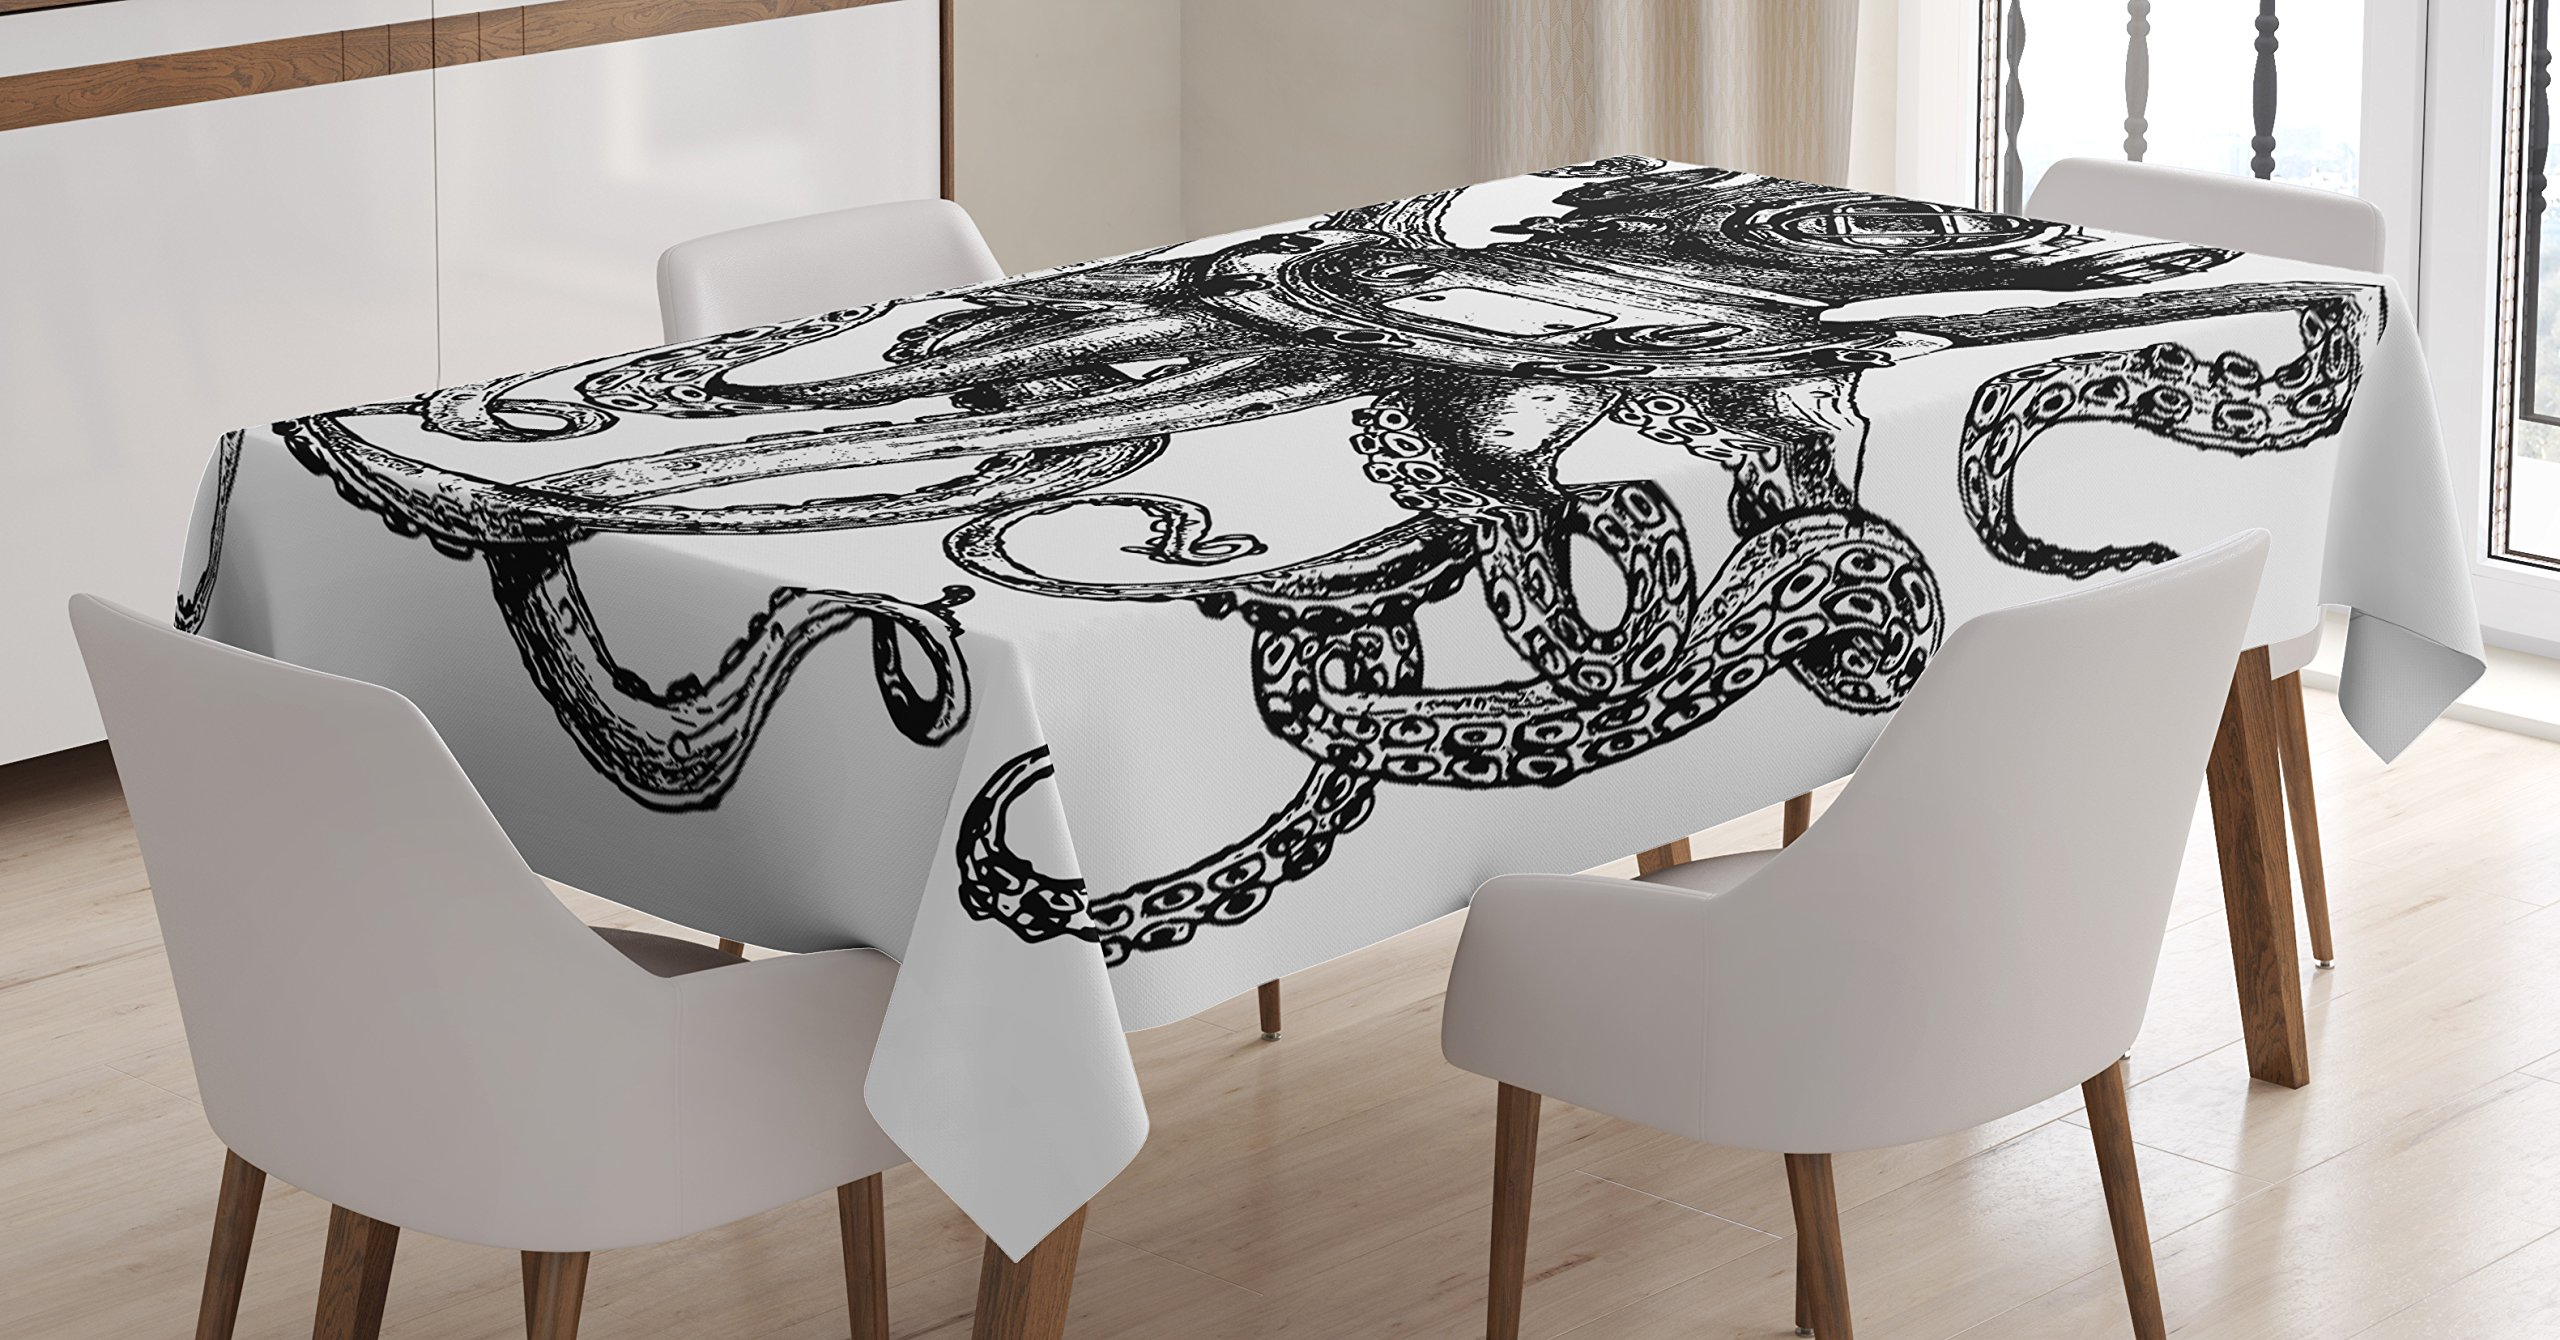 Ambesonne Octopus Tablecloth, Vintage Style Diver Helmet with Marine Animal Tentacles Scuba Concept, Dining Room Kitchen Rectangular Table Cover, 60 W X 84 L inches, Charcoal Grey and White